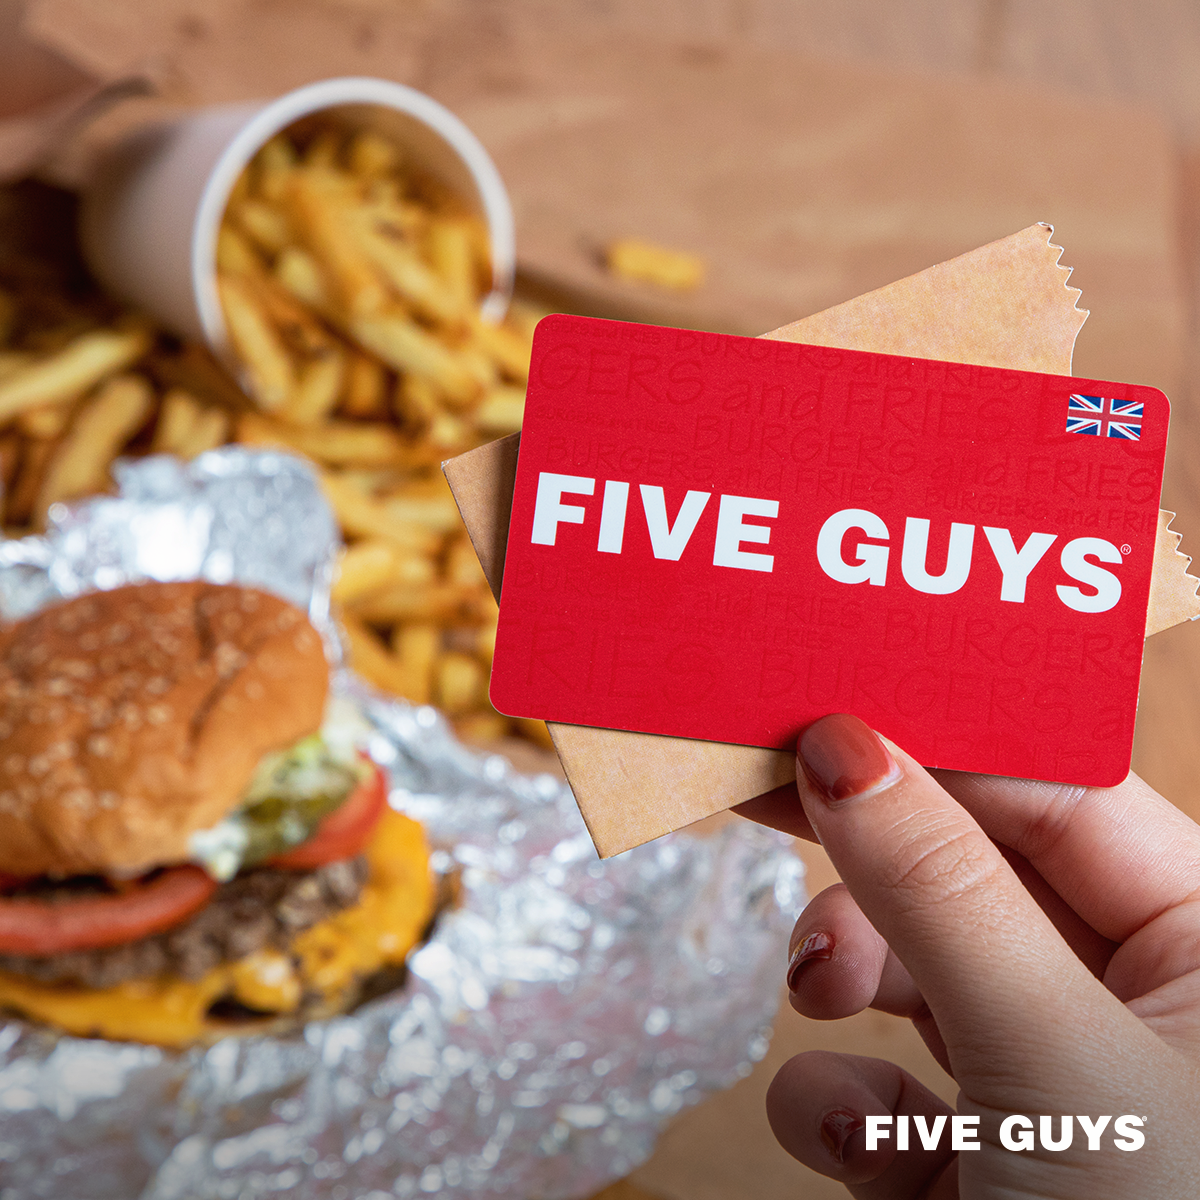 Five Guys burger and fries with a hand holding a card that says Five Guys in white text on a red background